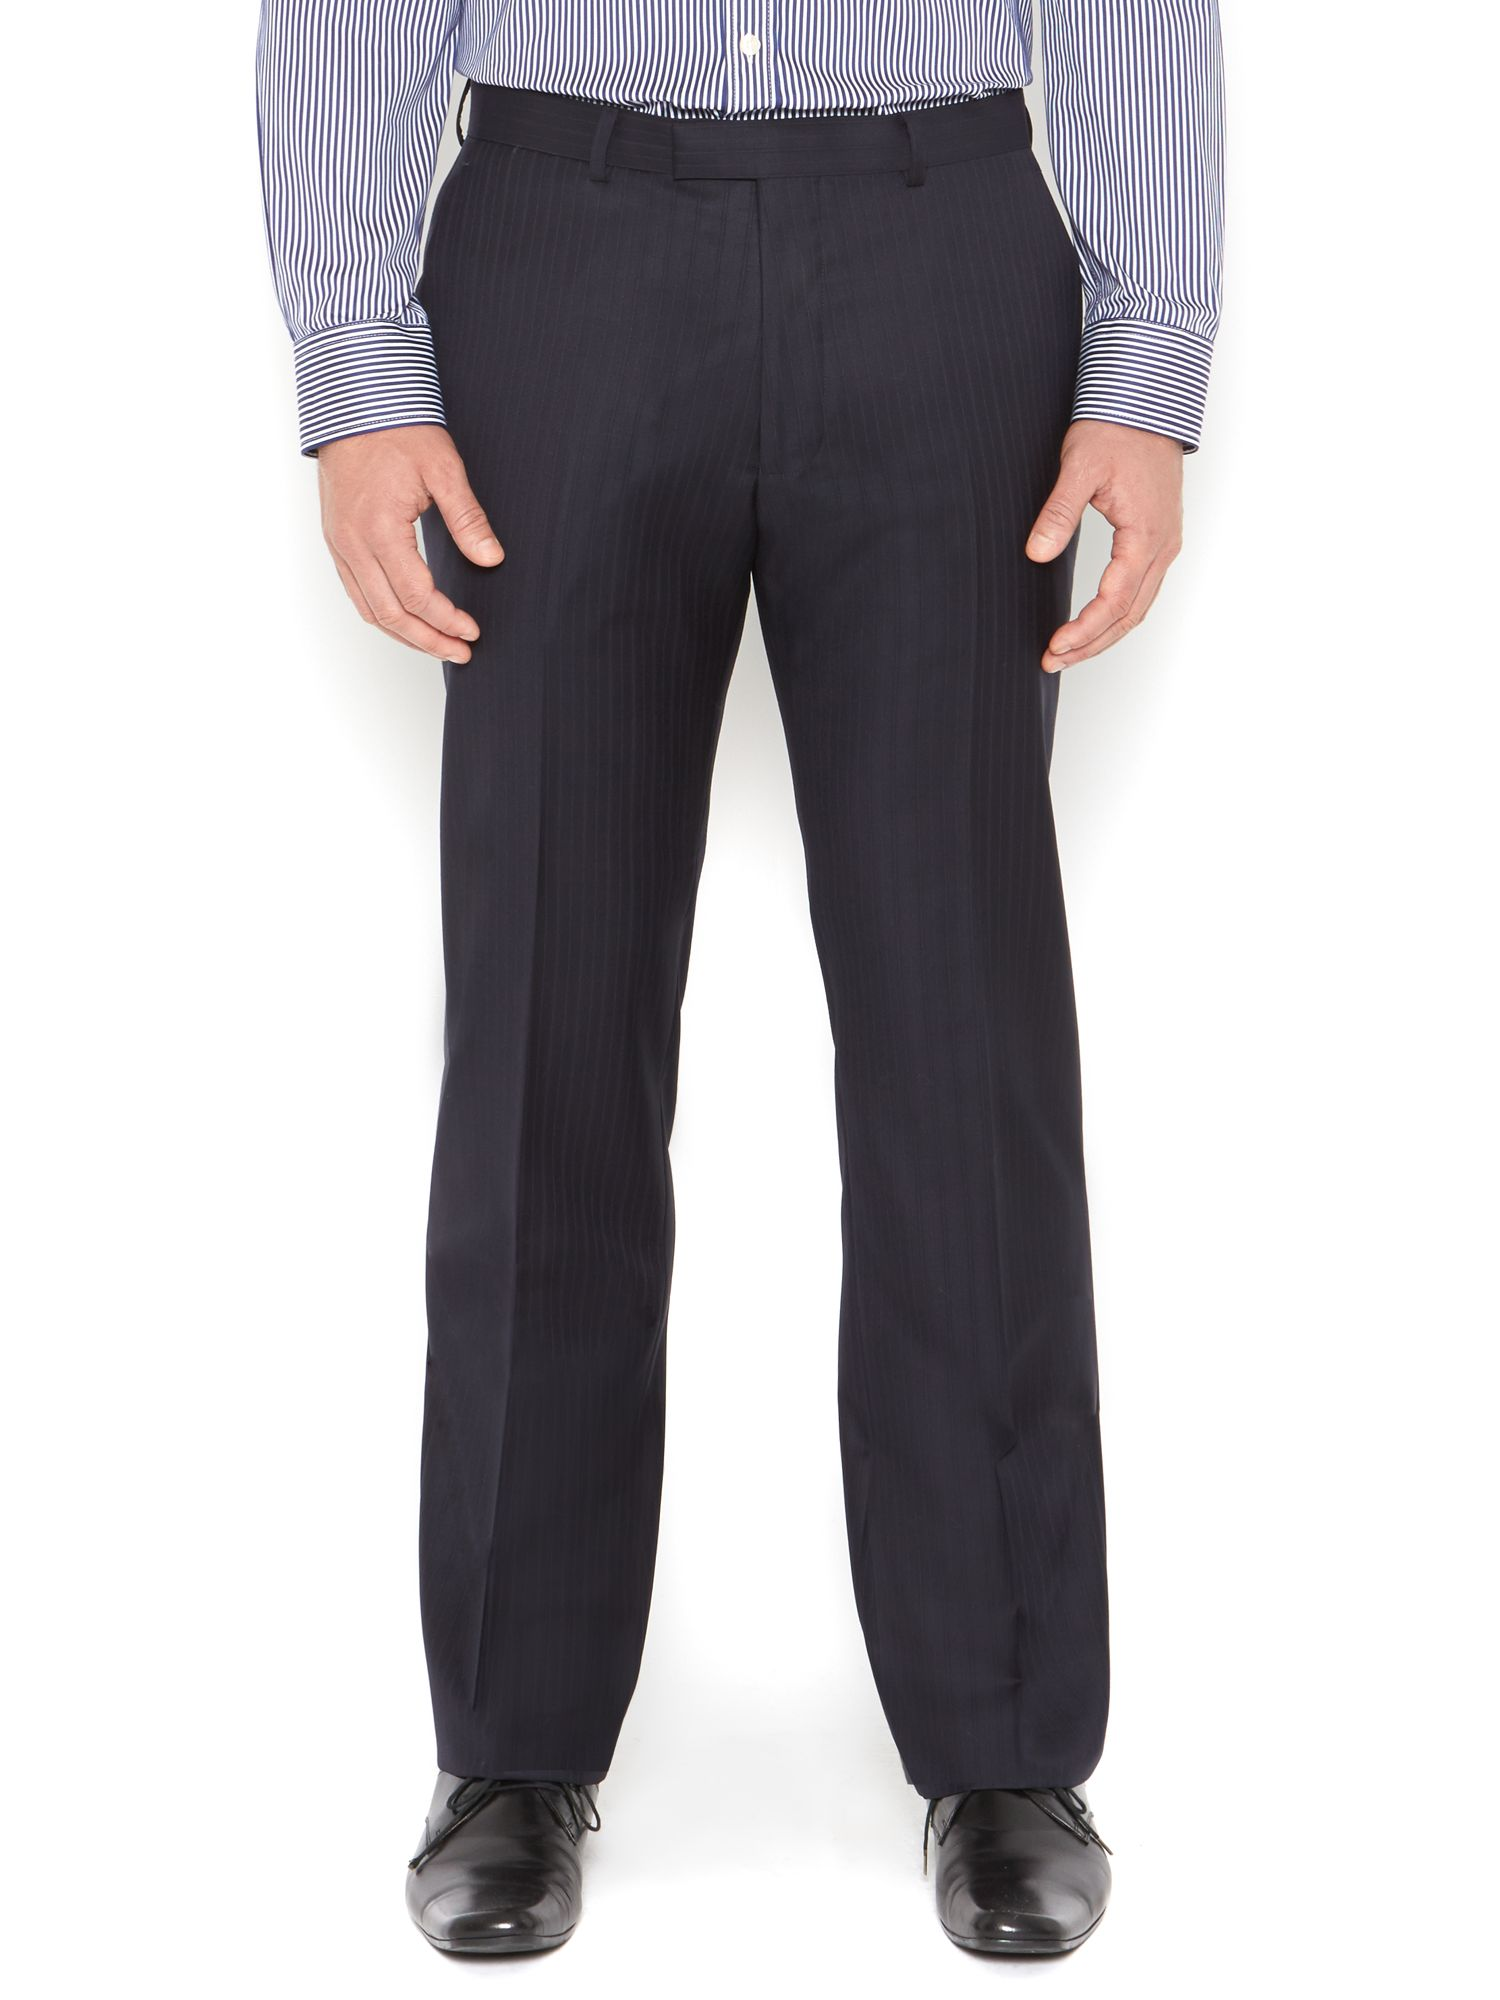 Whitehurst Twill Pinstripe Suit Trouser